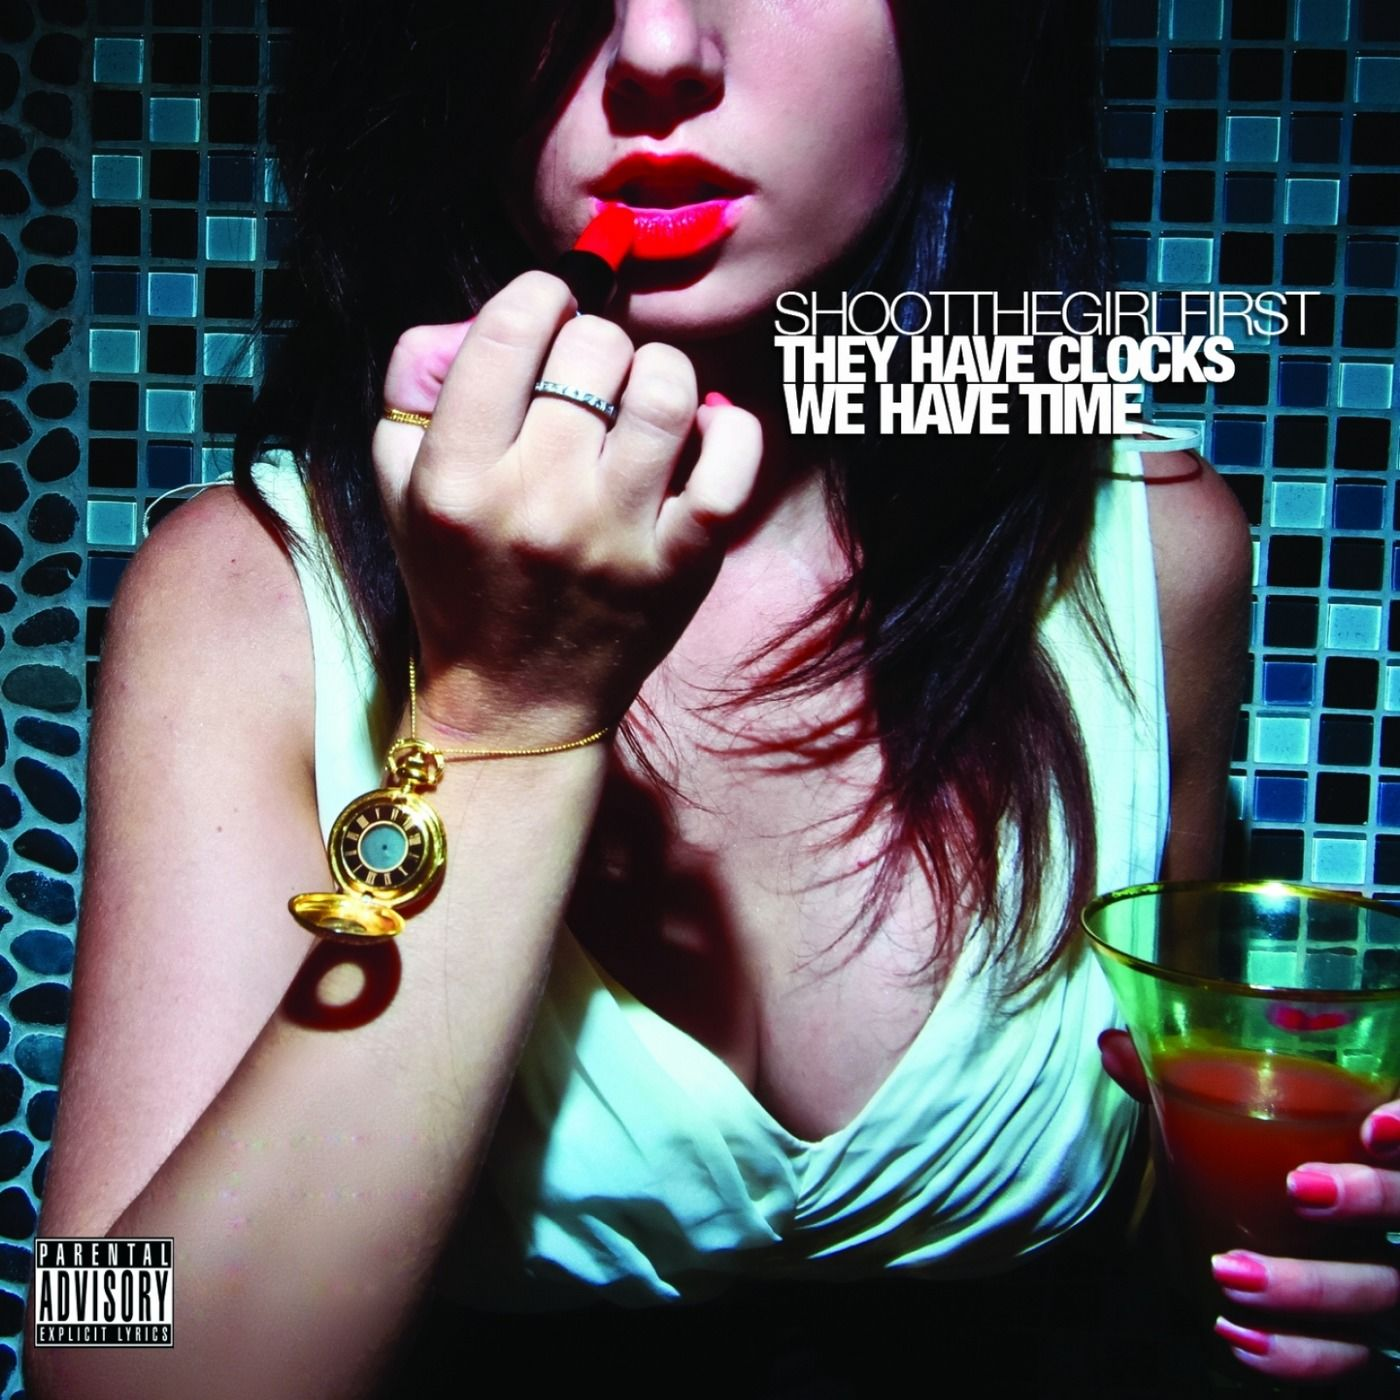 Shoot The Girl First - They Have Clocks, We Have Time [EP] (2011)